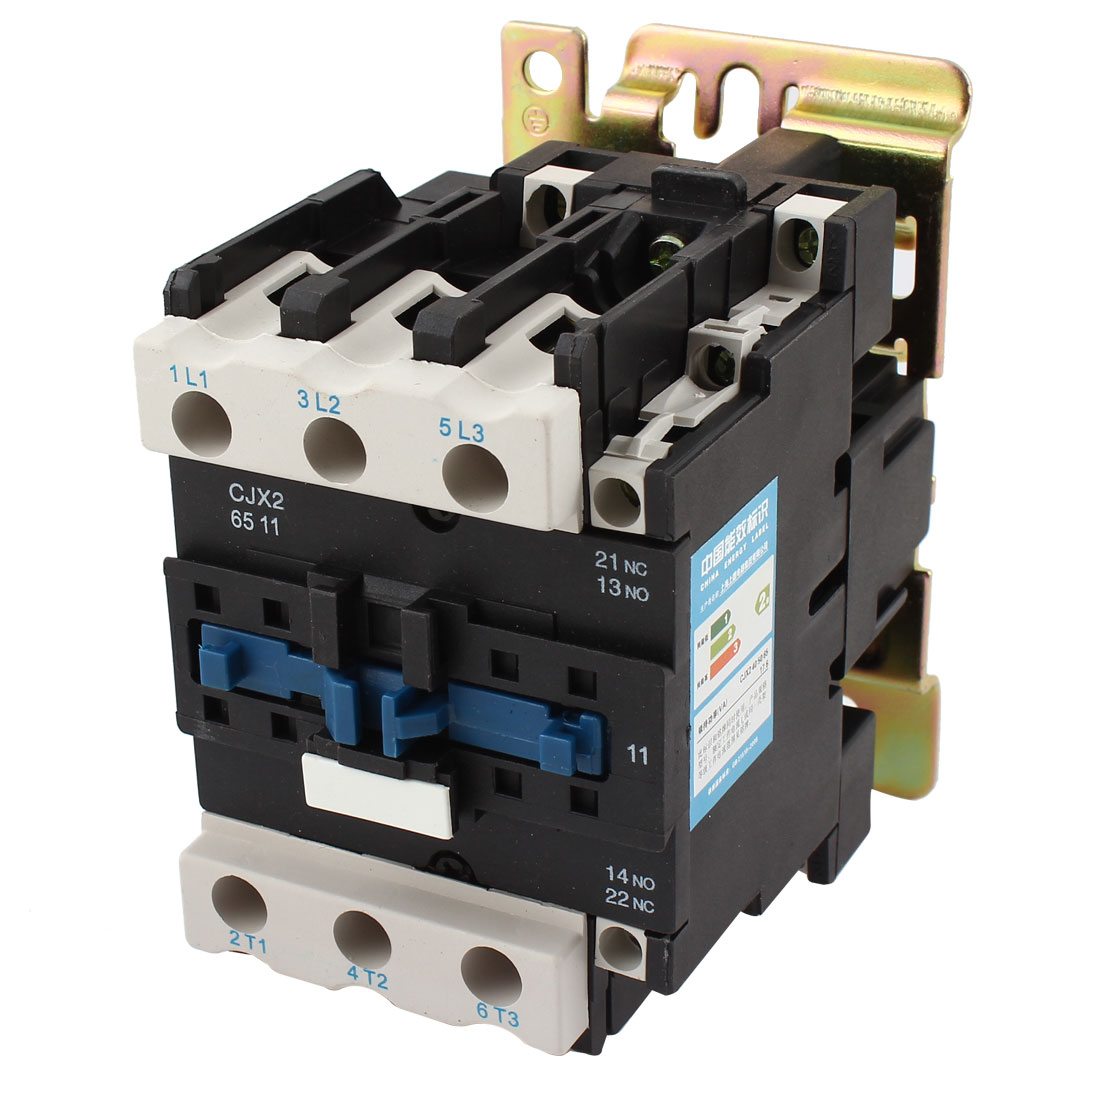 CJX2-6511 660V 80A 220V Coil Voltage 35mm 75mm DIN Rail Mounting 3-Phase 6 Screw Terminals 1NO 1NC AC Safety Electric Circuit Control Power Contactor